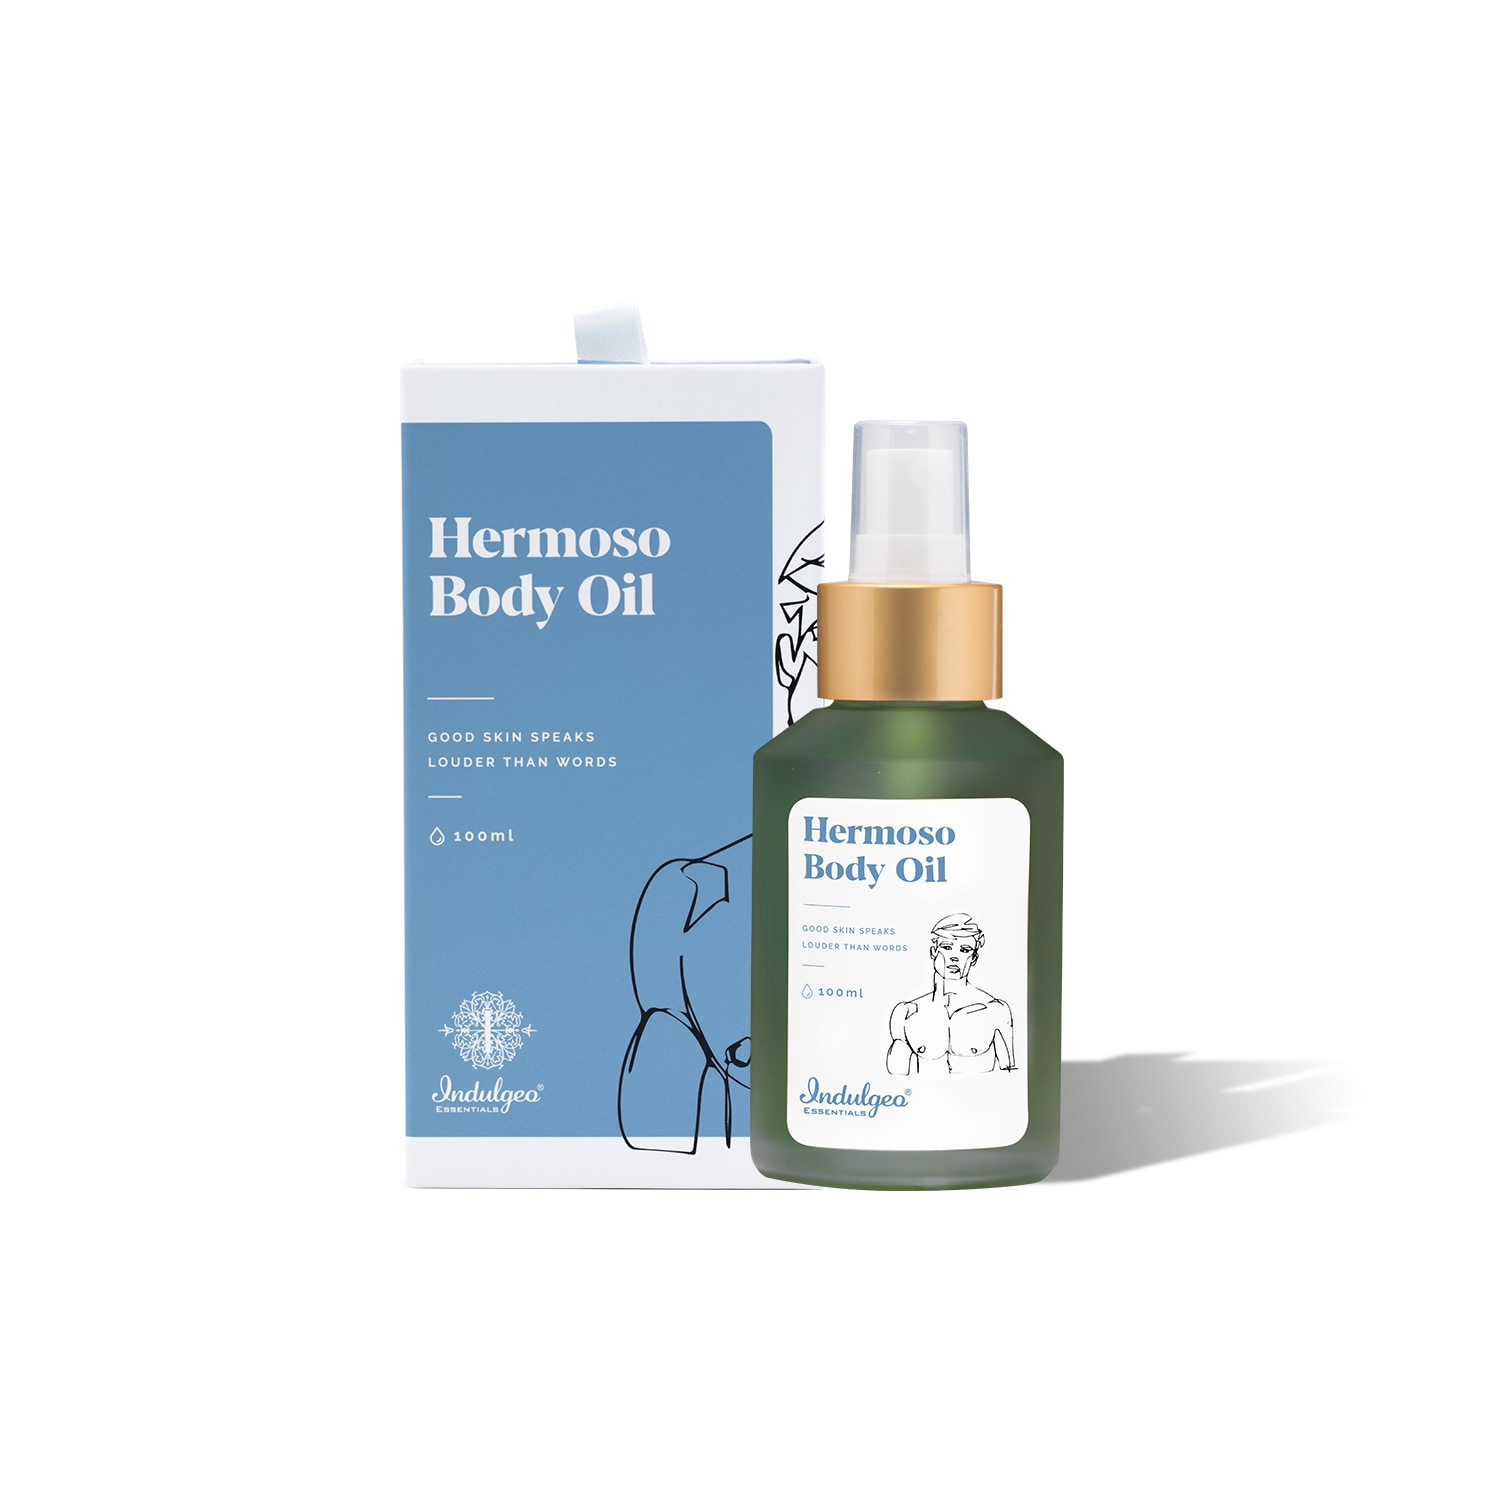 This body oil doubles as an after shower oil or an excellent massage oil